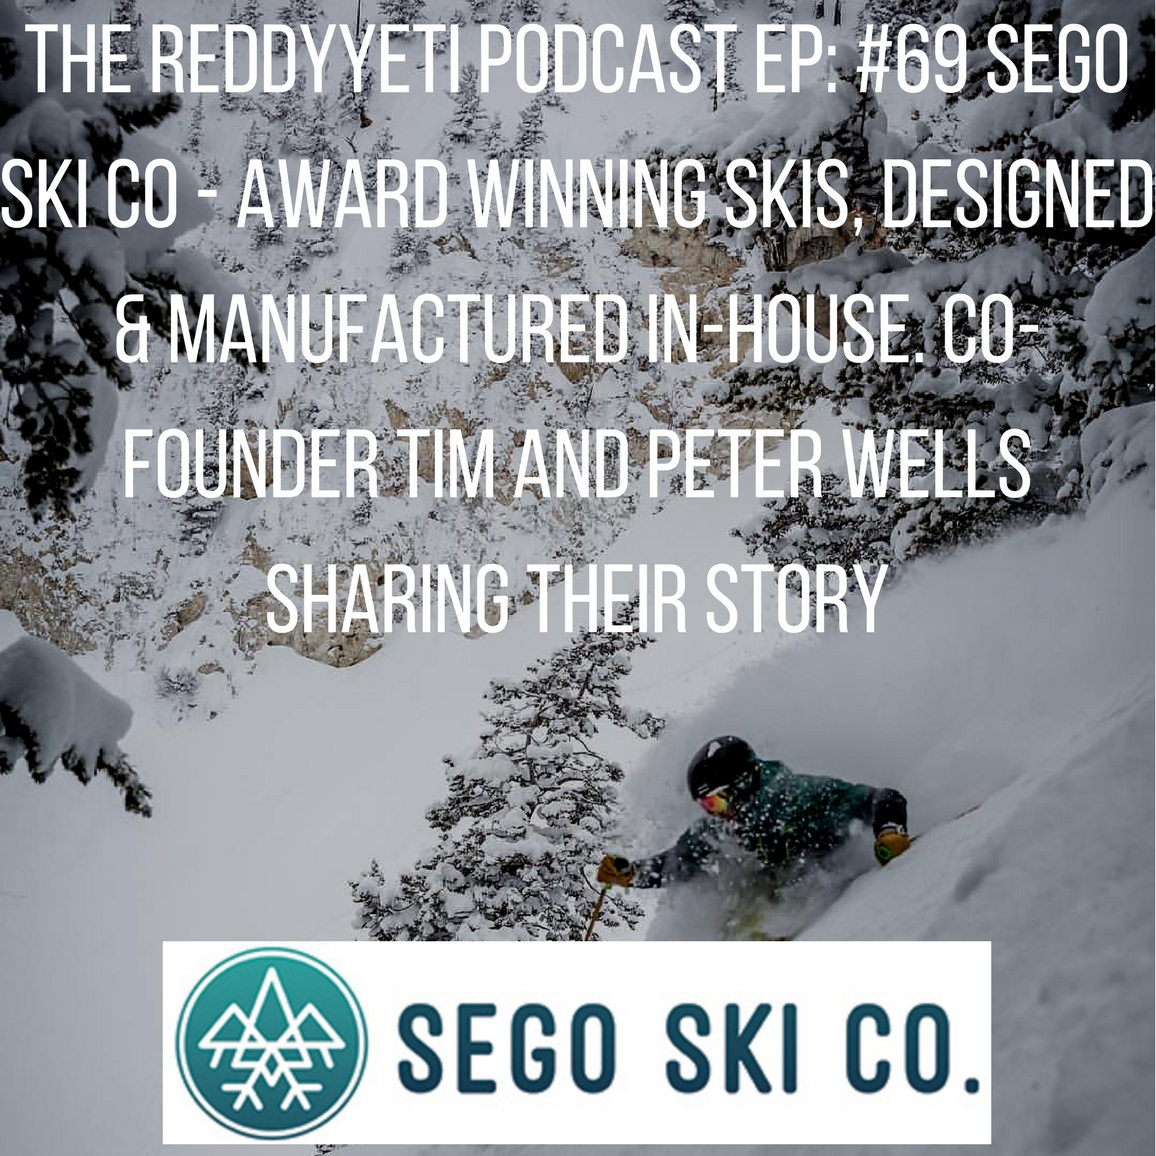 Sego Skis Podcast image.jpg